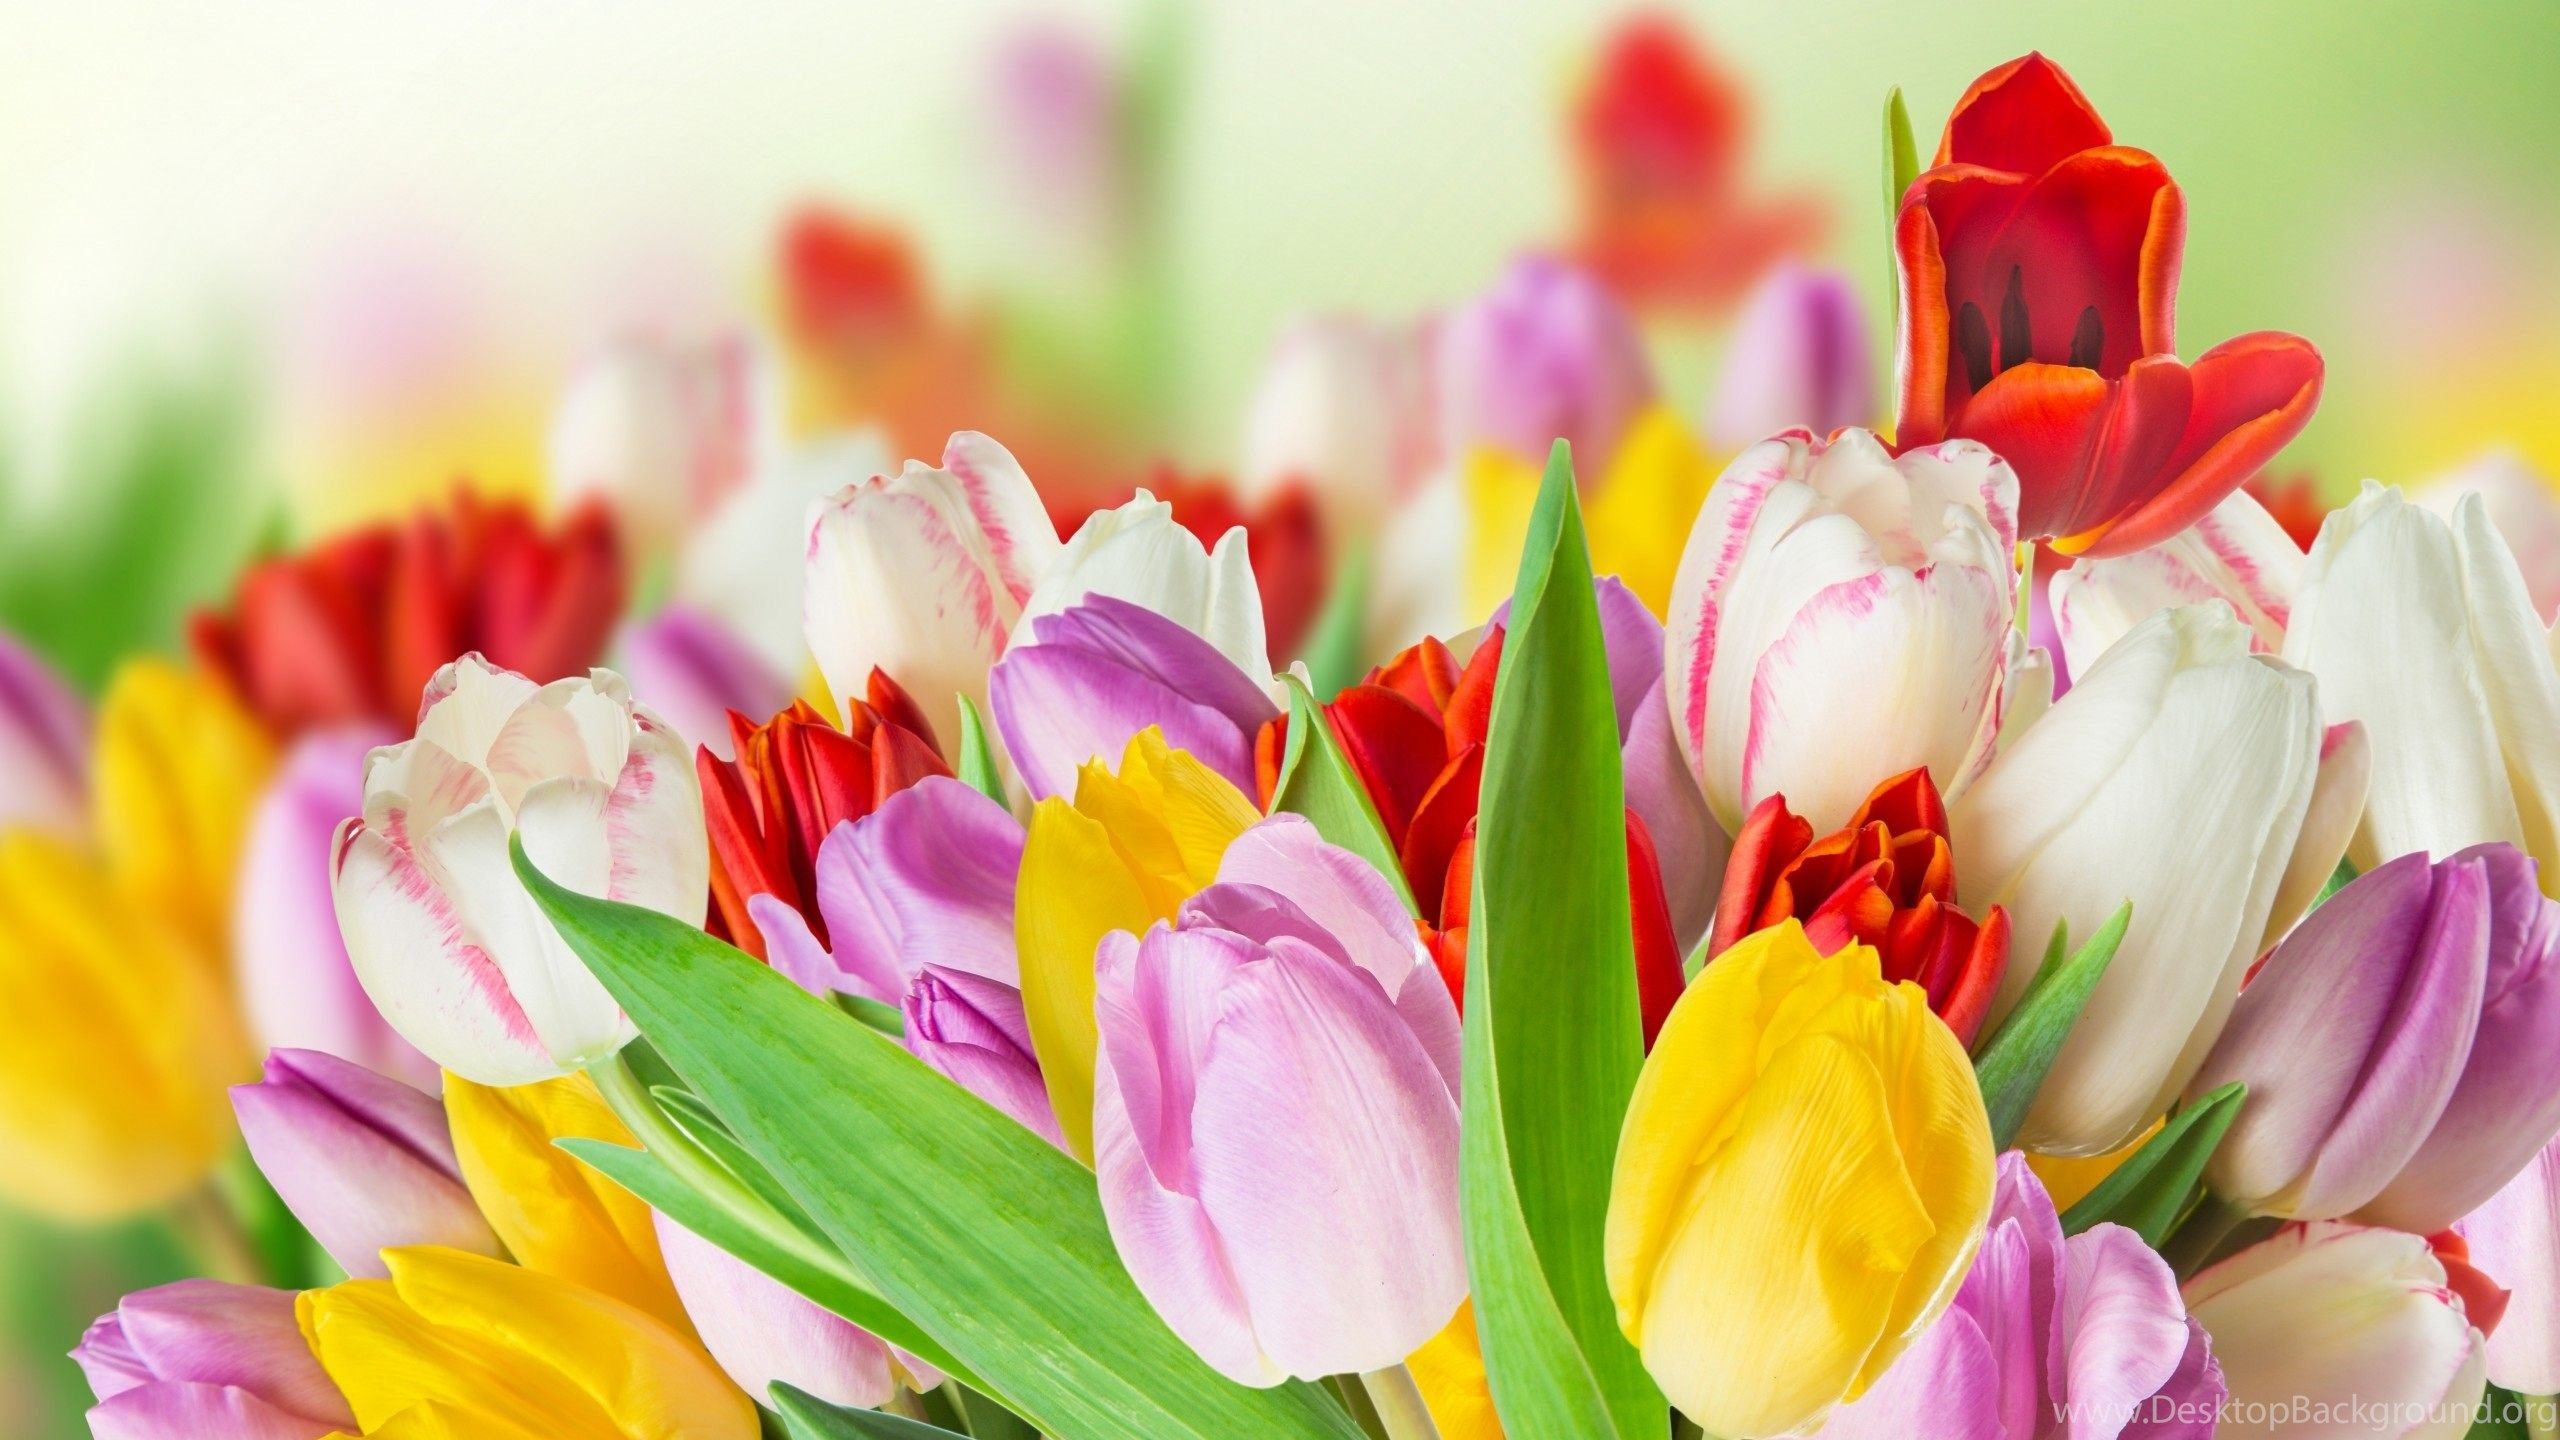 spring beauty colorful flowers wallpapers hd download desktop background